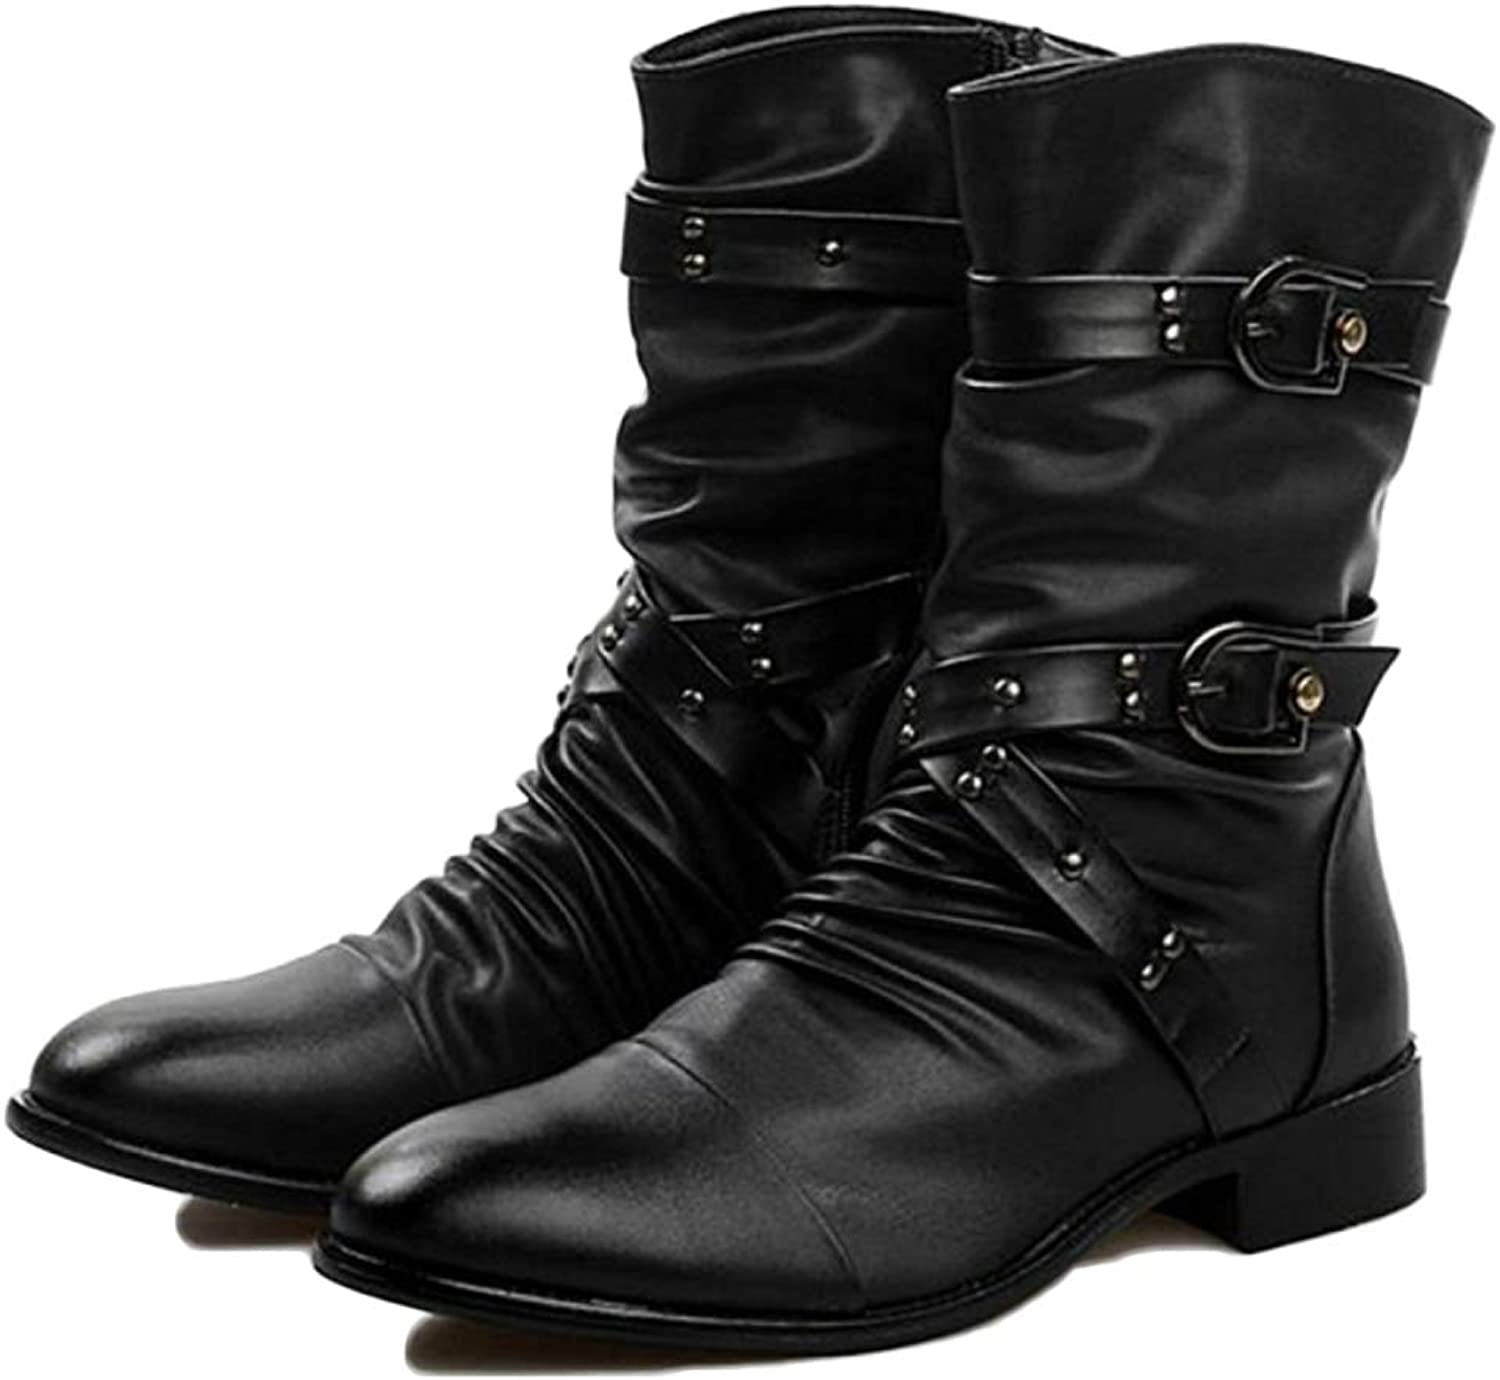 Men's Boots Martin Boots Adult Boots Classic Boots Classic Leather Fashion Rivets High Help